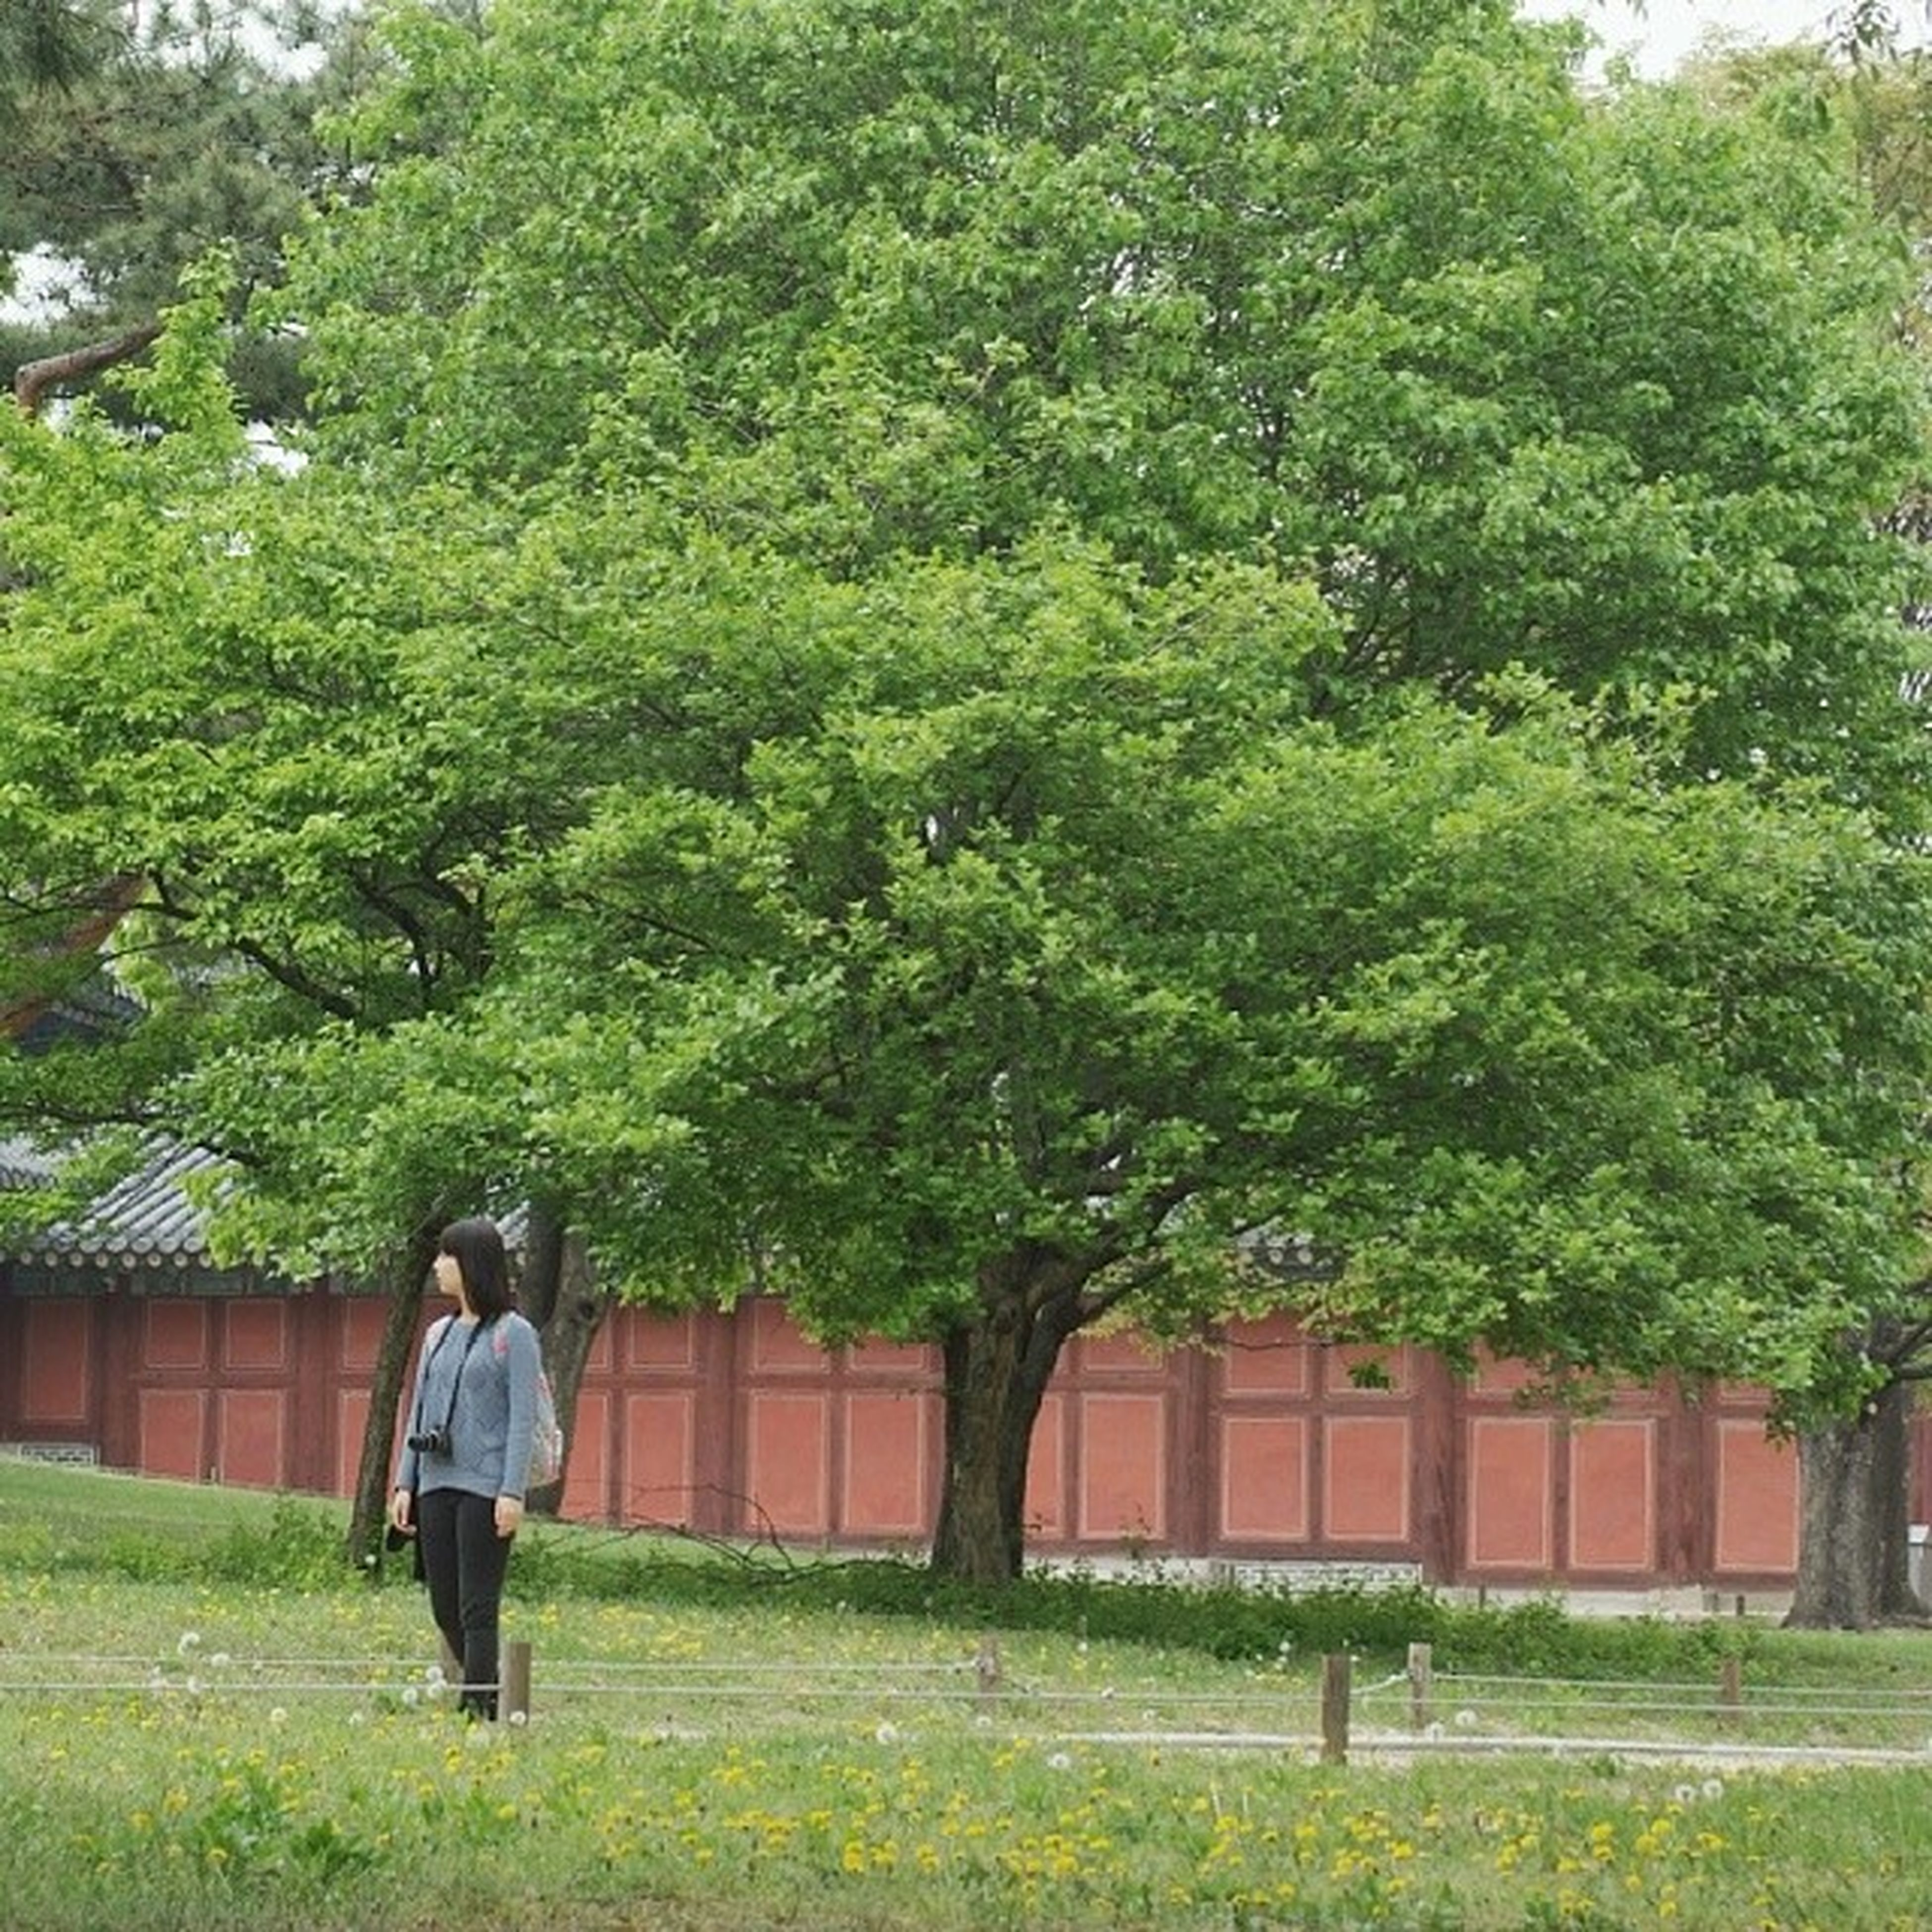 rear view, tree, full length, lifestyles, casual clothing, leisure activity, walking, men, grass, green color, standing, person, growth, plant, nature, day, outdoors, building exterior